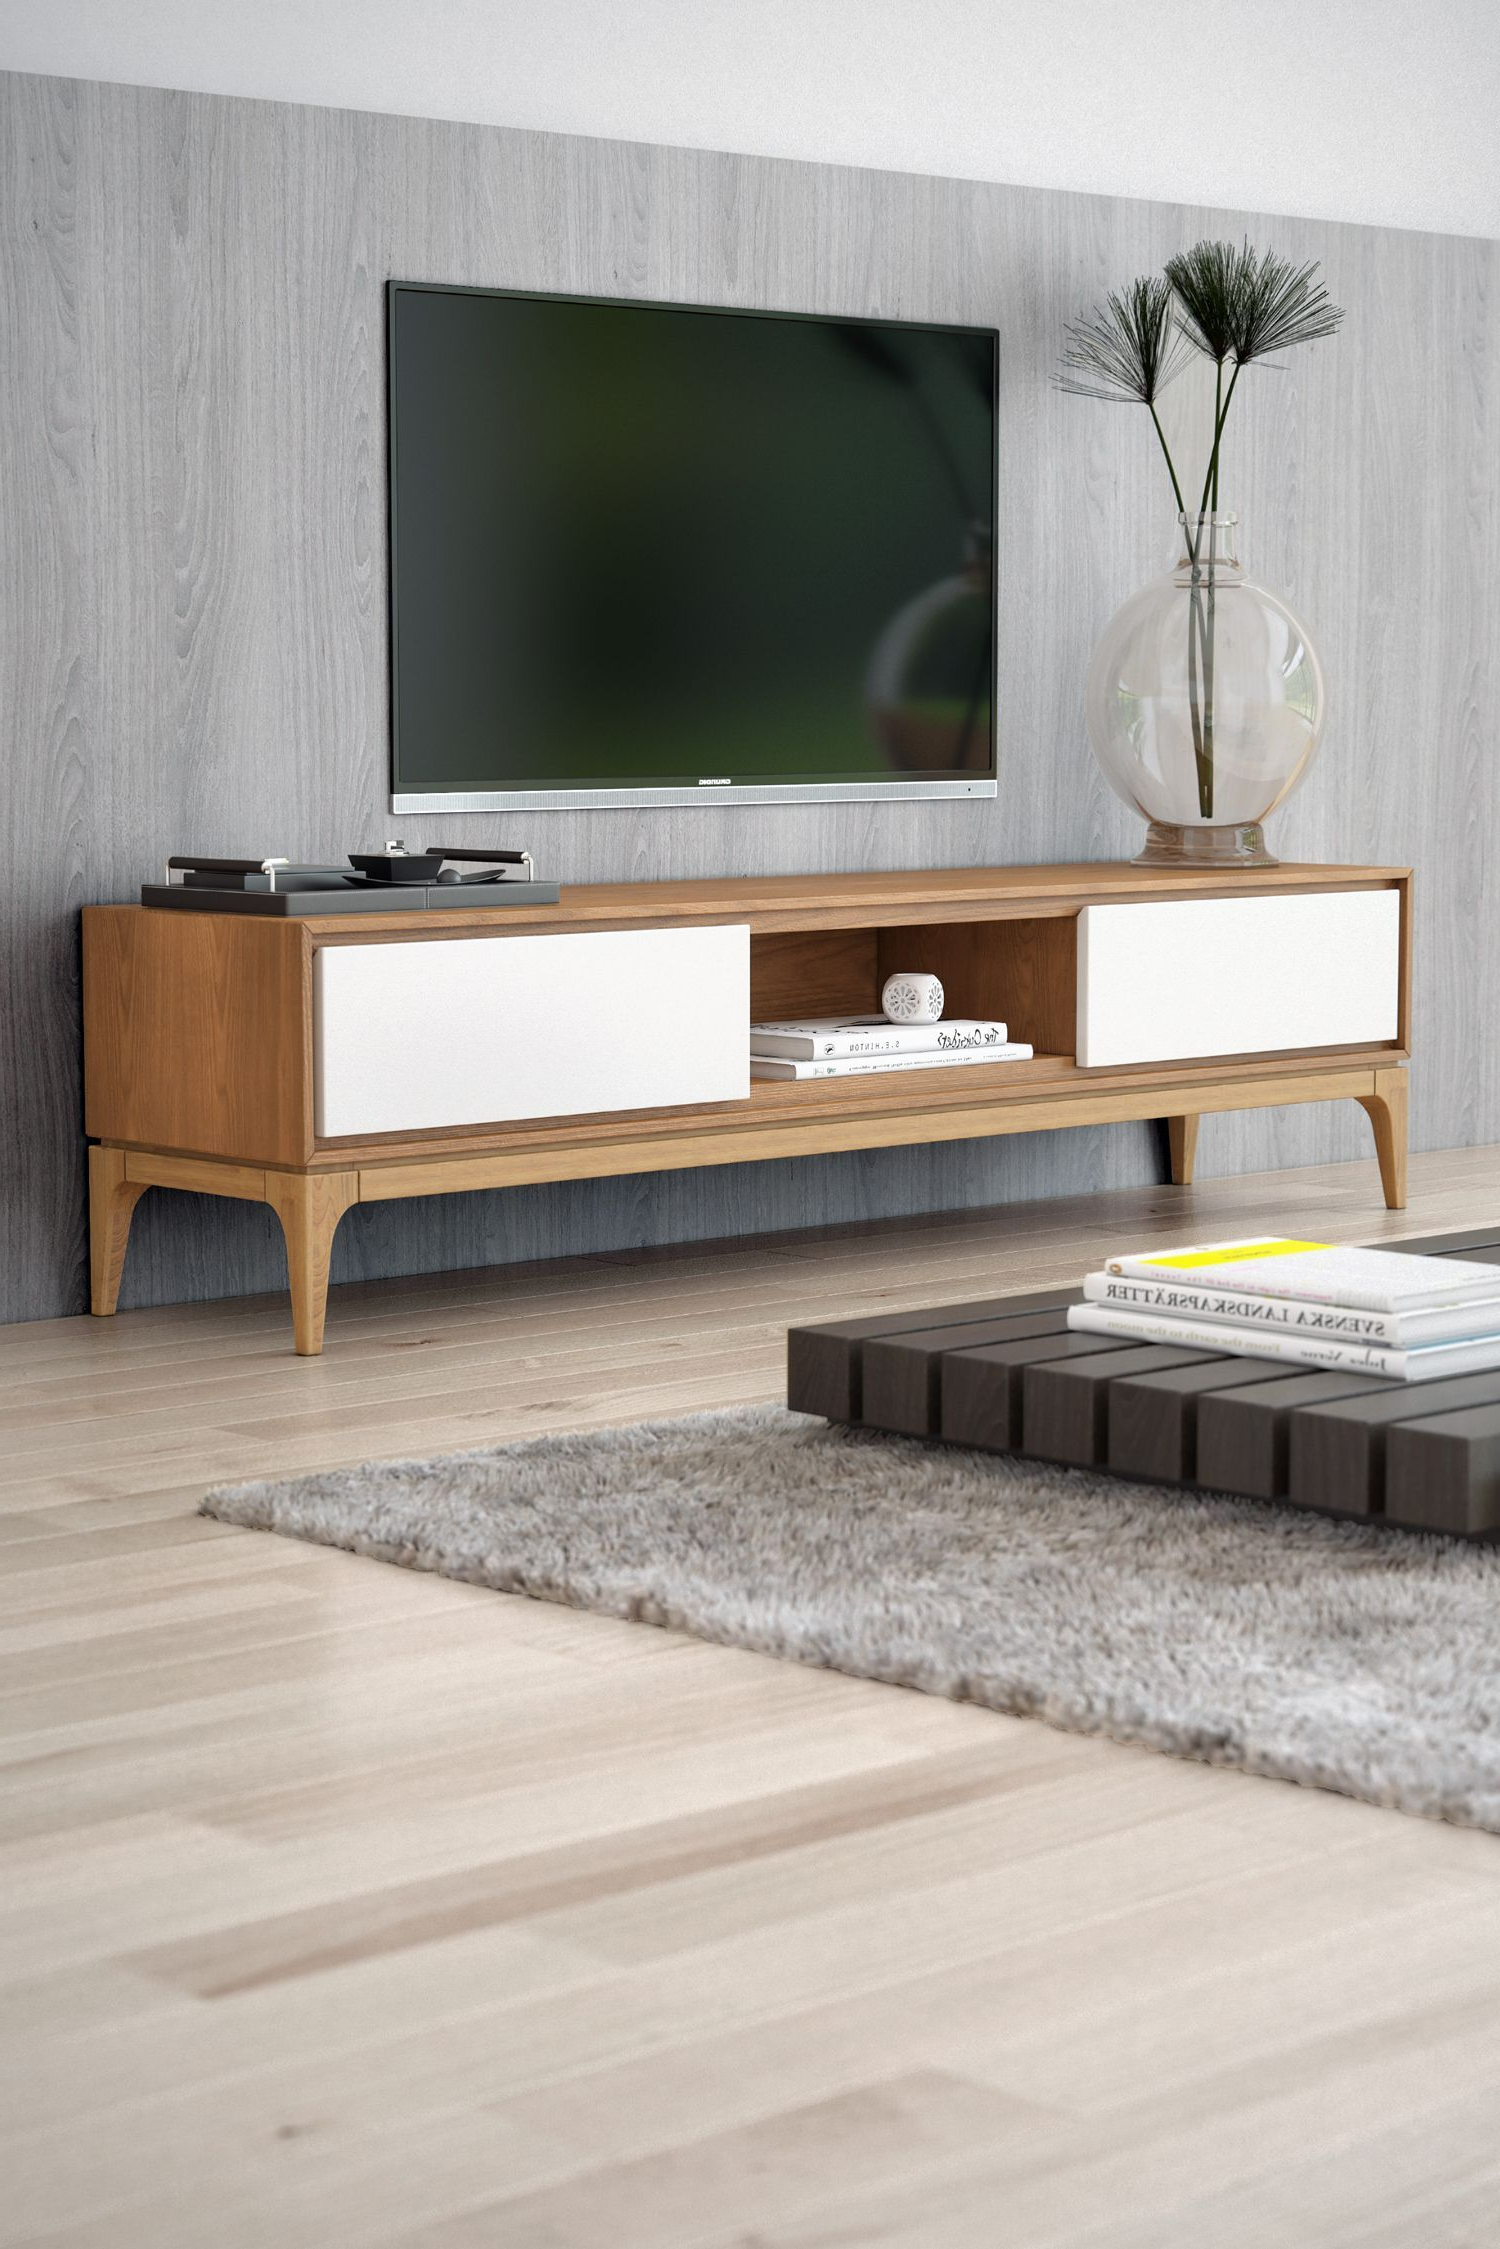 Rove Concepts Rove Concepts Mid Century Furniture With Regard To Vista 60 Inch Tv Stands (View 15 of 20)